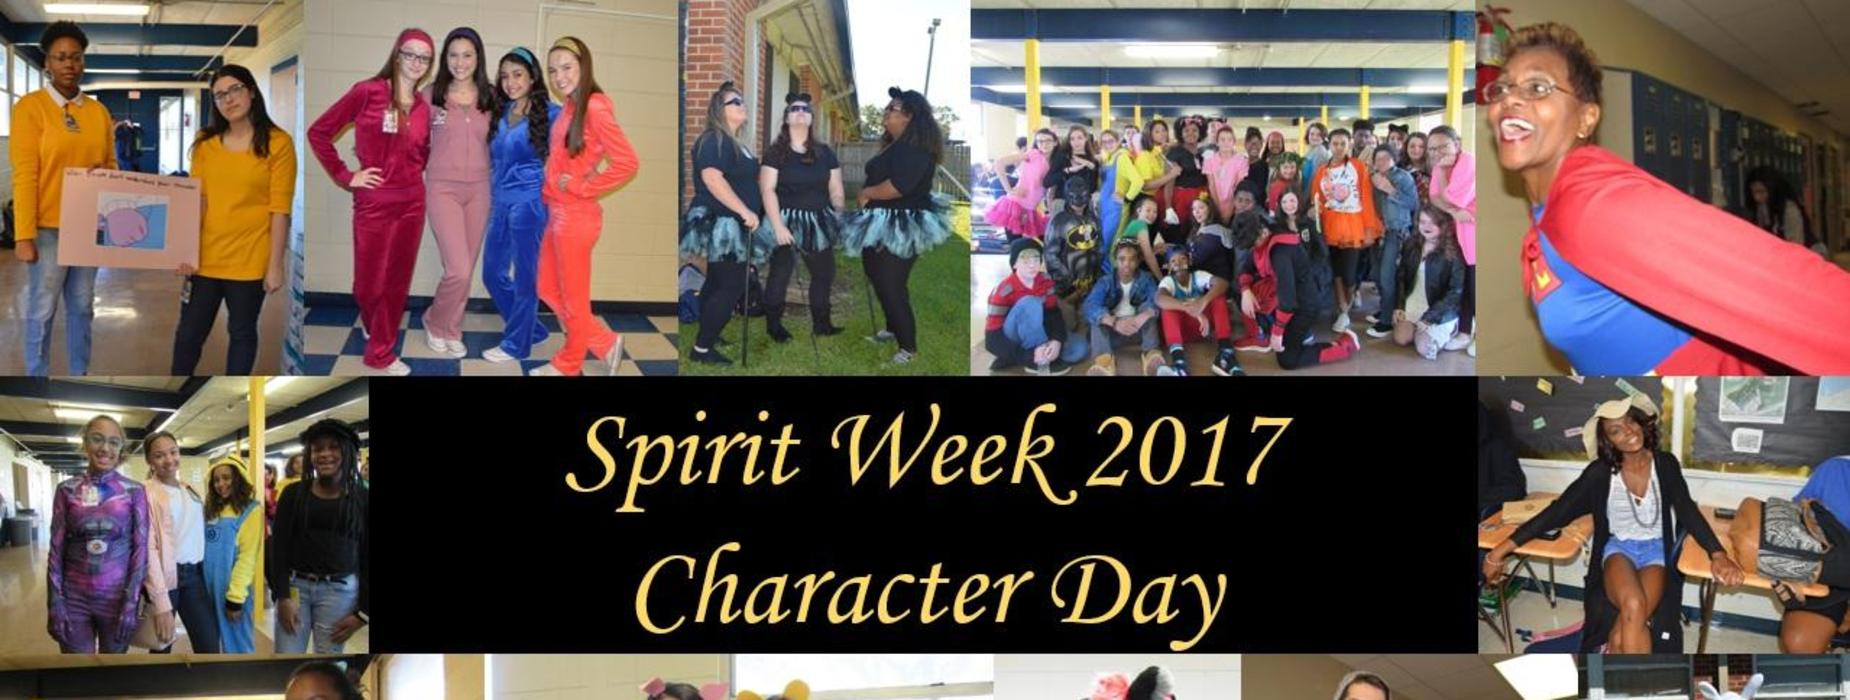 Spirit Week - Character